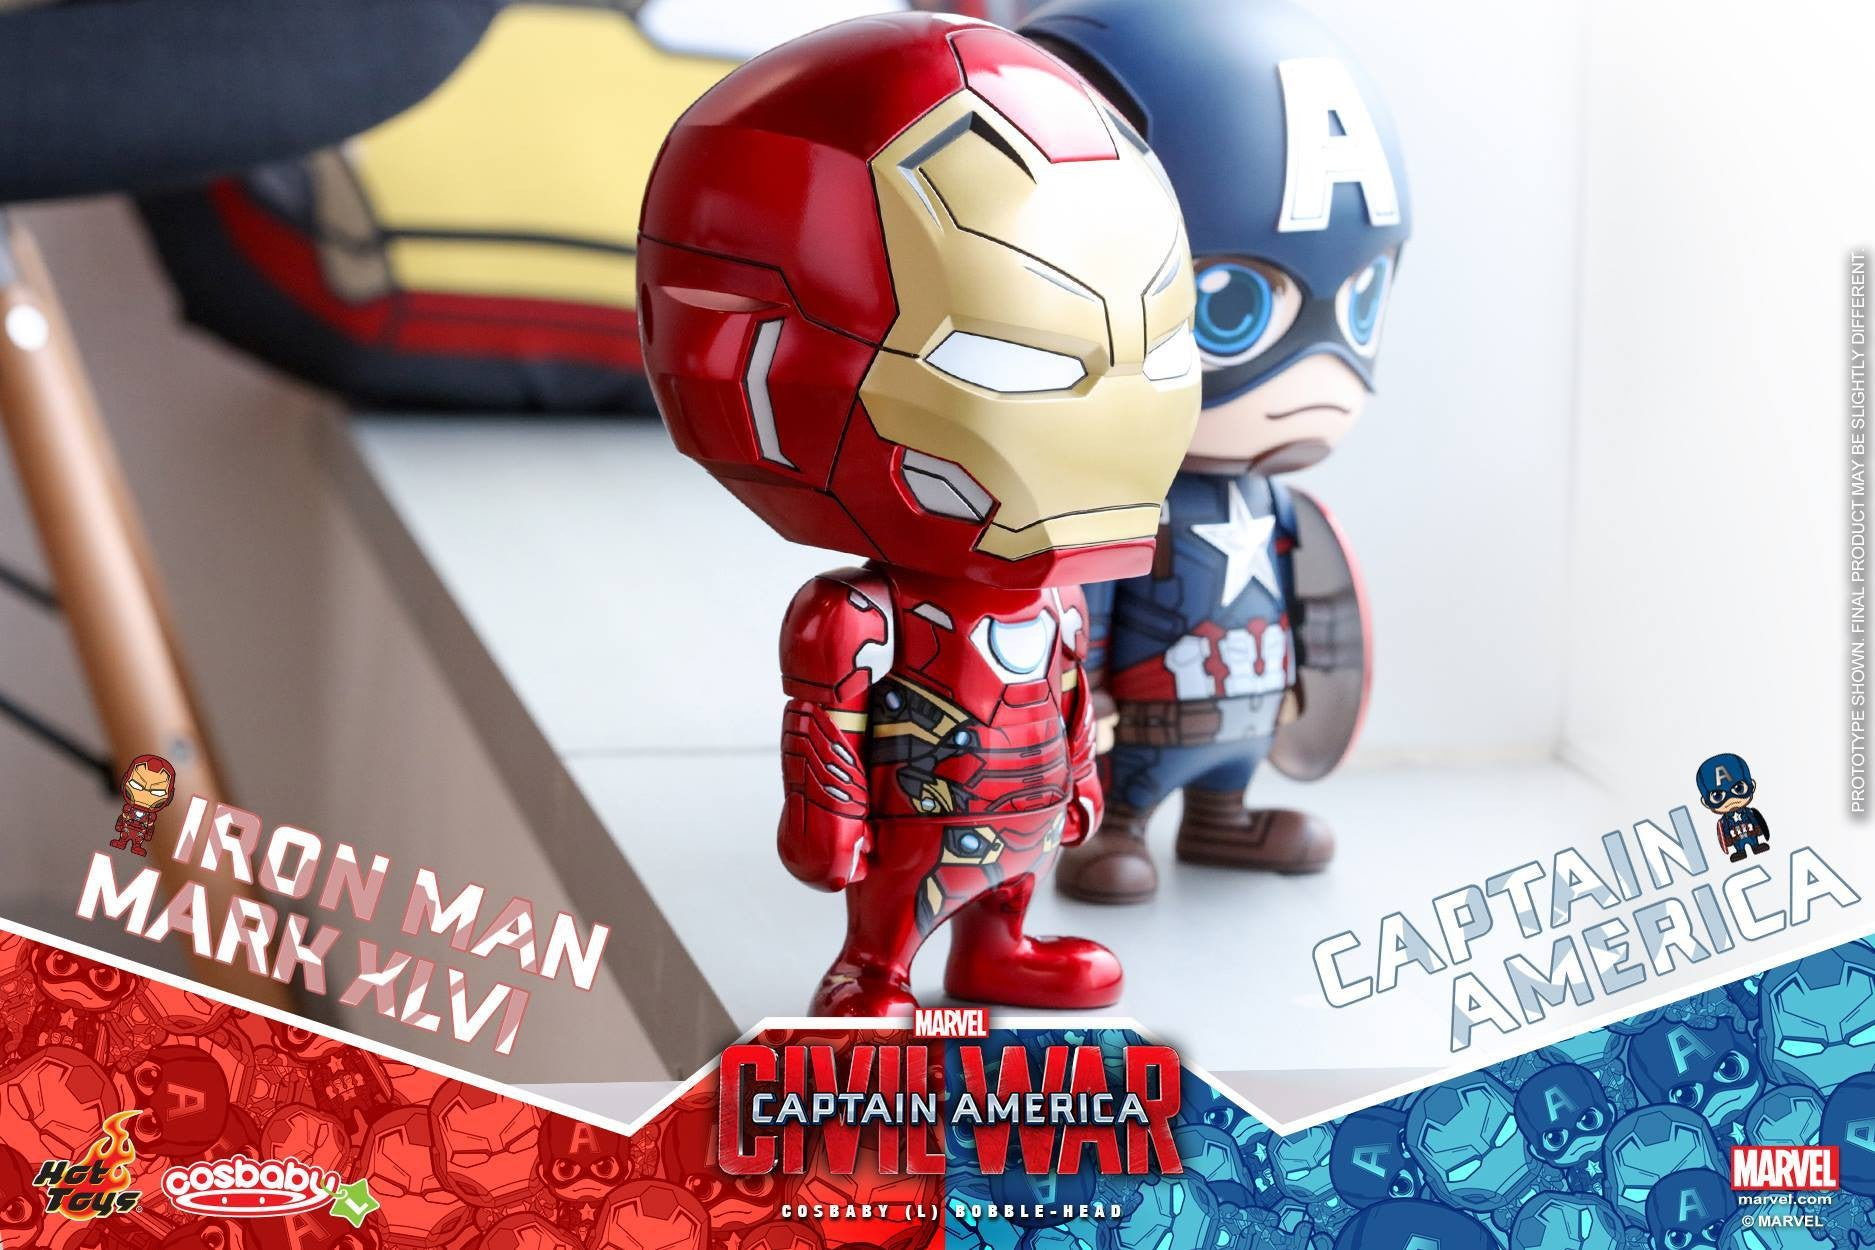 Hot Toys - COSB324 - Captain America: Civil War - Iron Man Mark XLVI Cosbaby (L) Bobble-Head - Marvelous Toys - 2